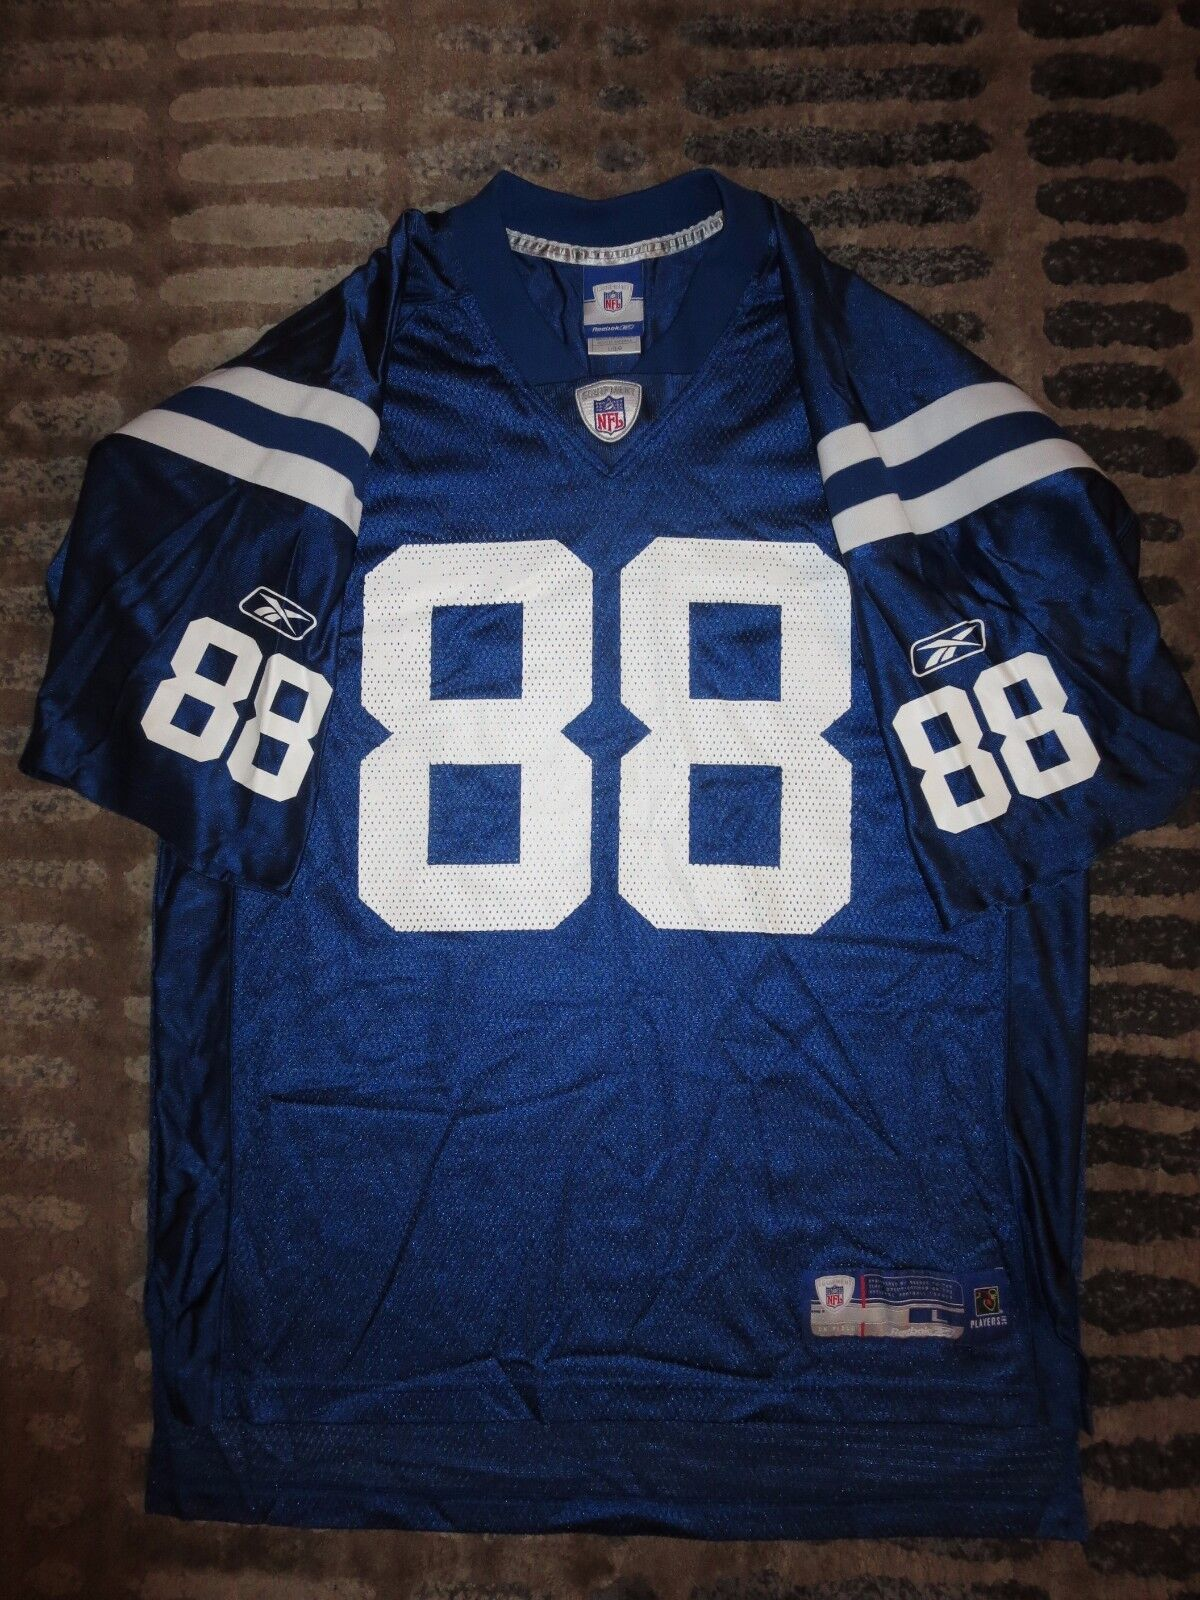 Marvin Colts Harrison  88 Indianapolis Colts Marvin NFL Reebok Trikot L L ad2211